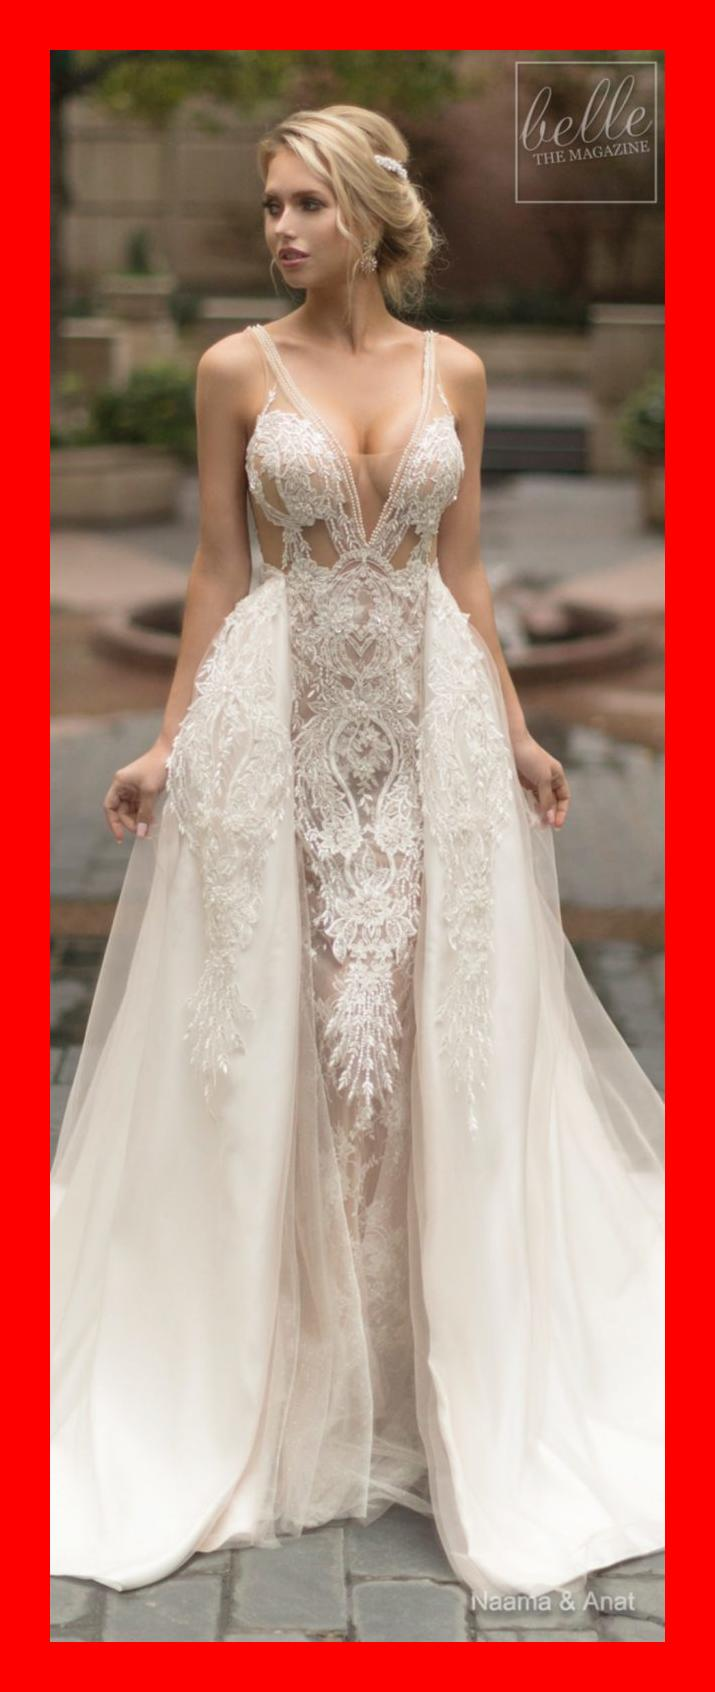 Naama and Anat Wedding Dress Collection 2019: Dancing Up the Aisle